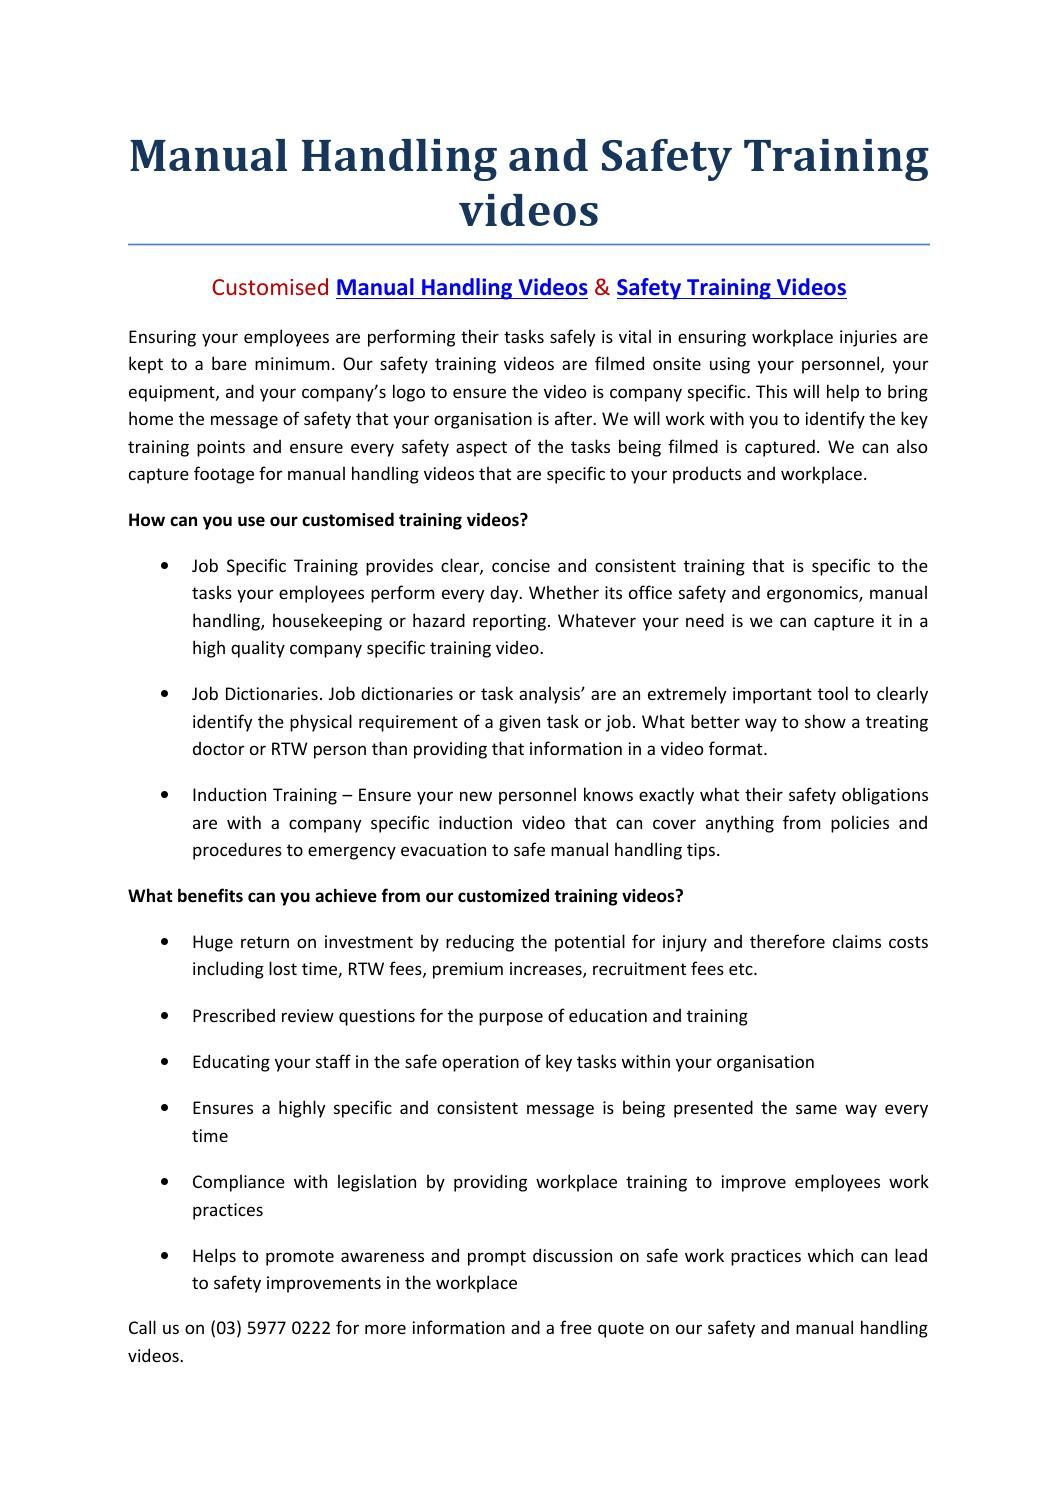 Manual handling and safety training videos Safety